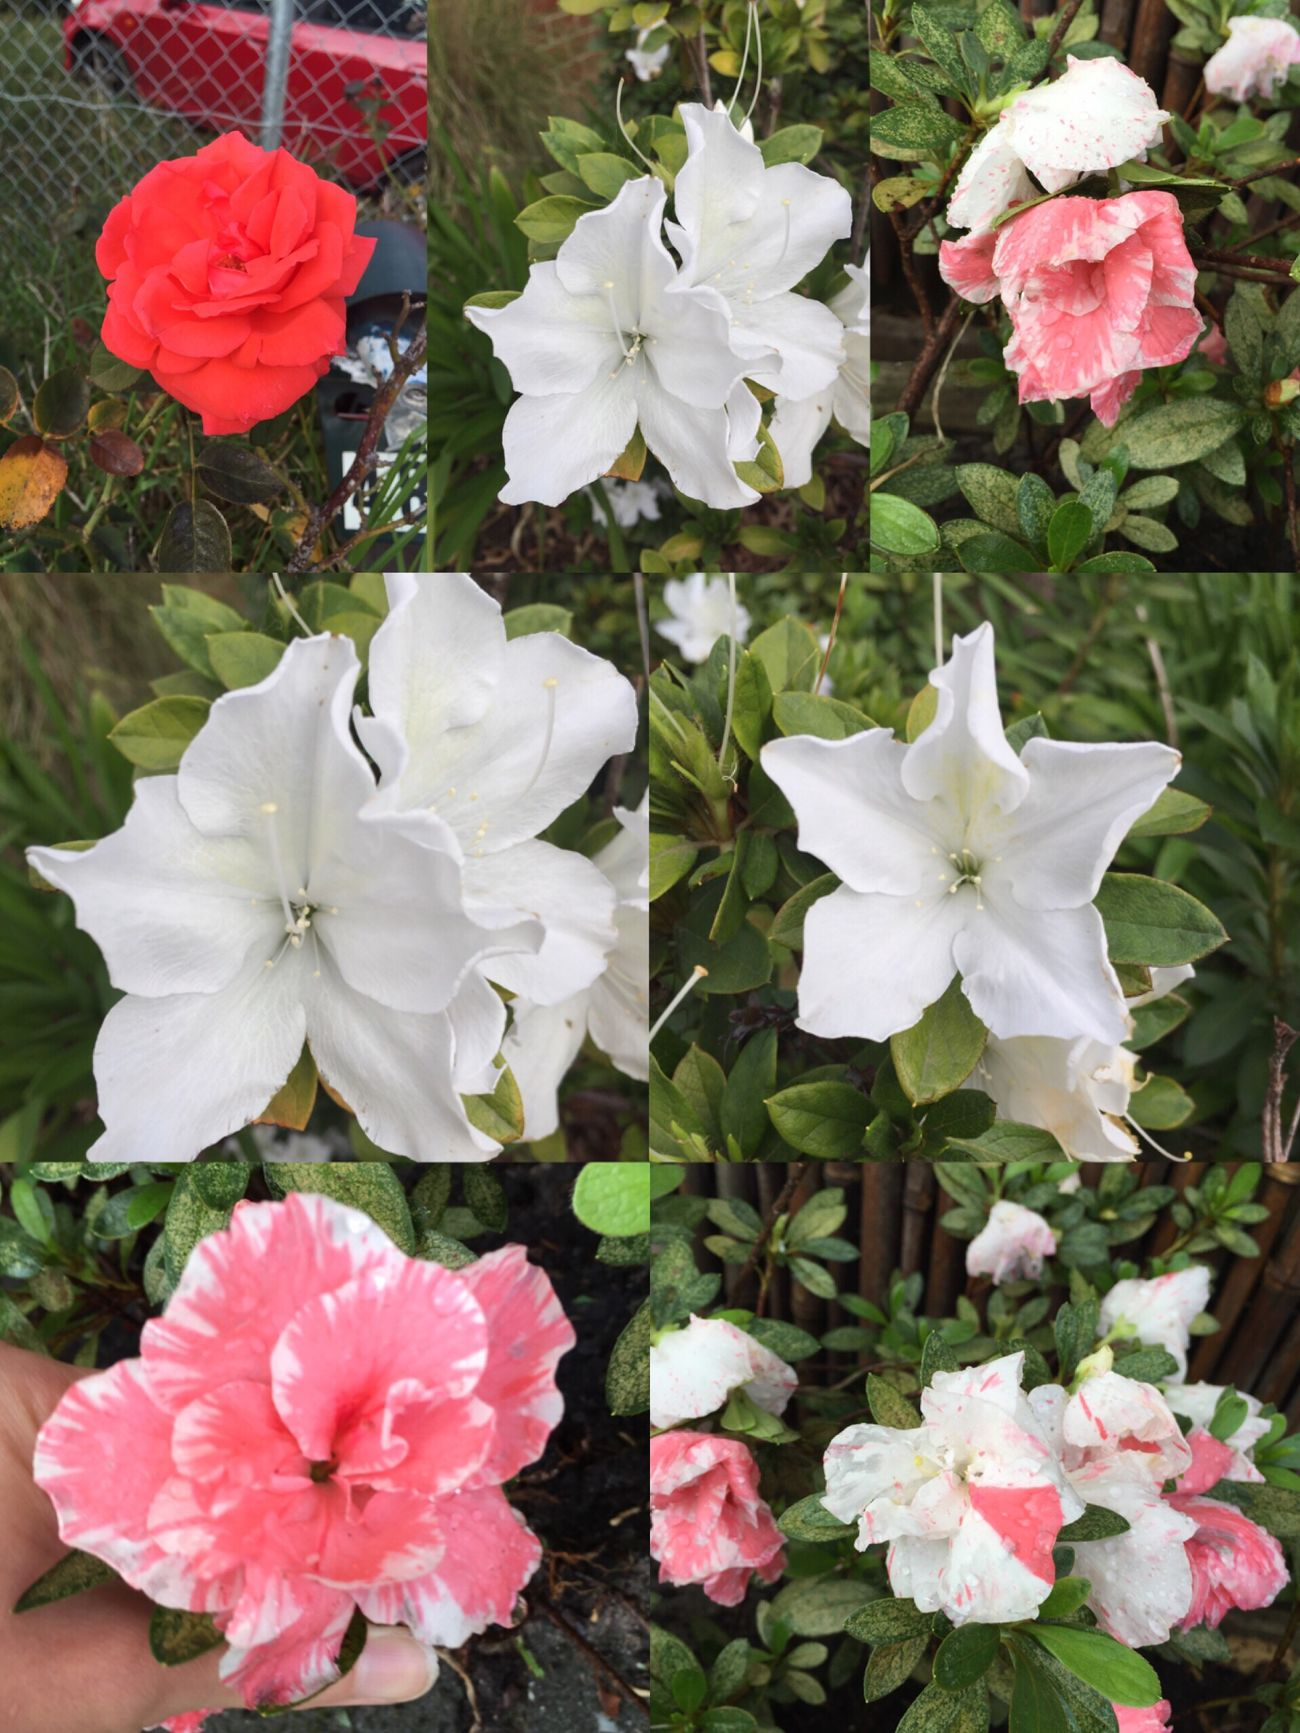 Flower collage 🌺🌸🌿🍃🌹🌸🌻 Flowers Nature Pretty Outside